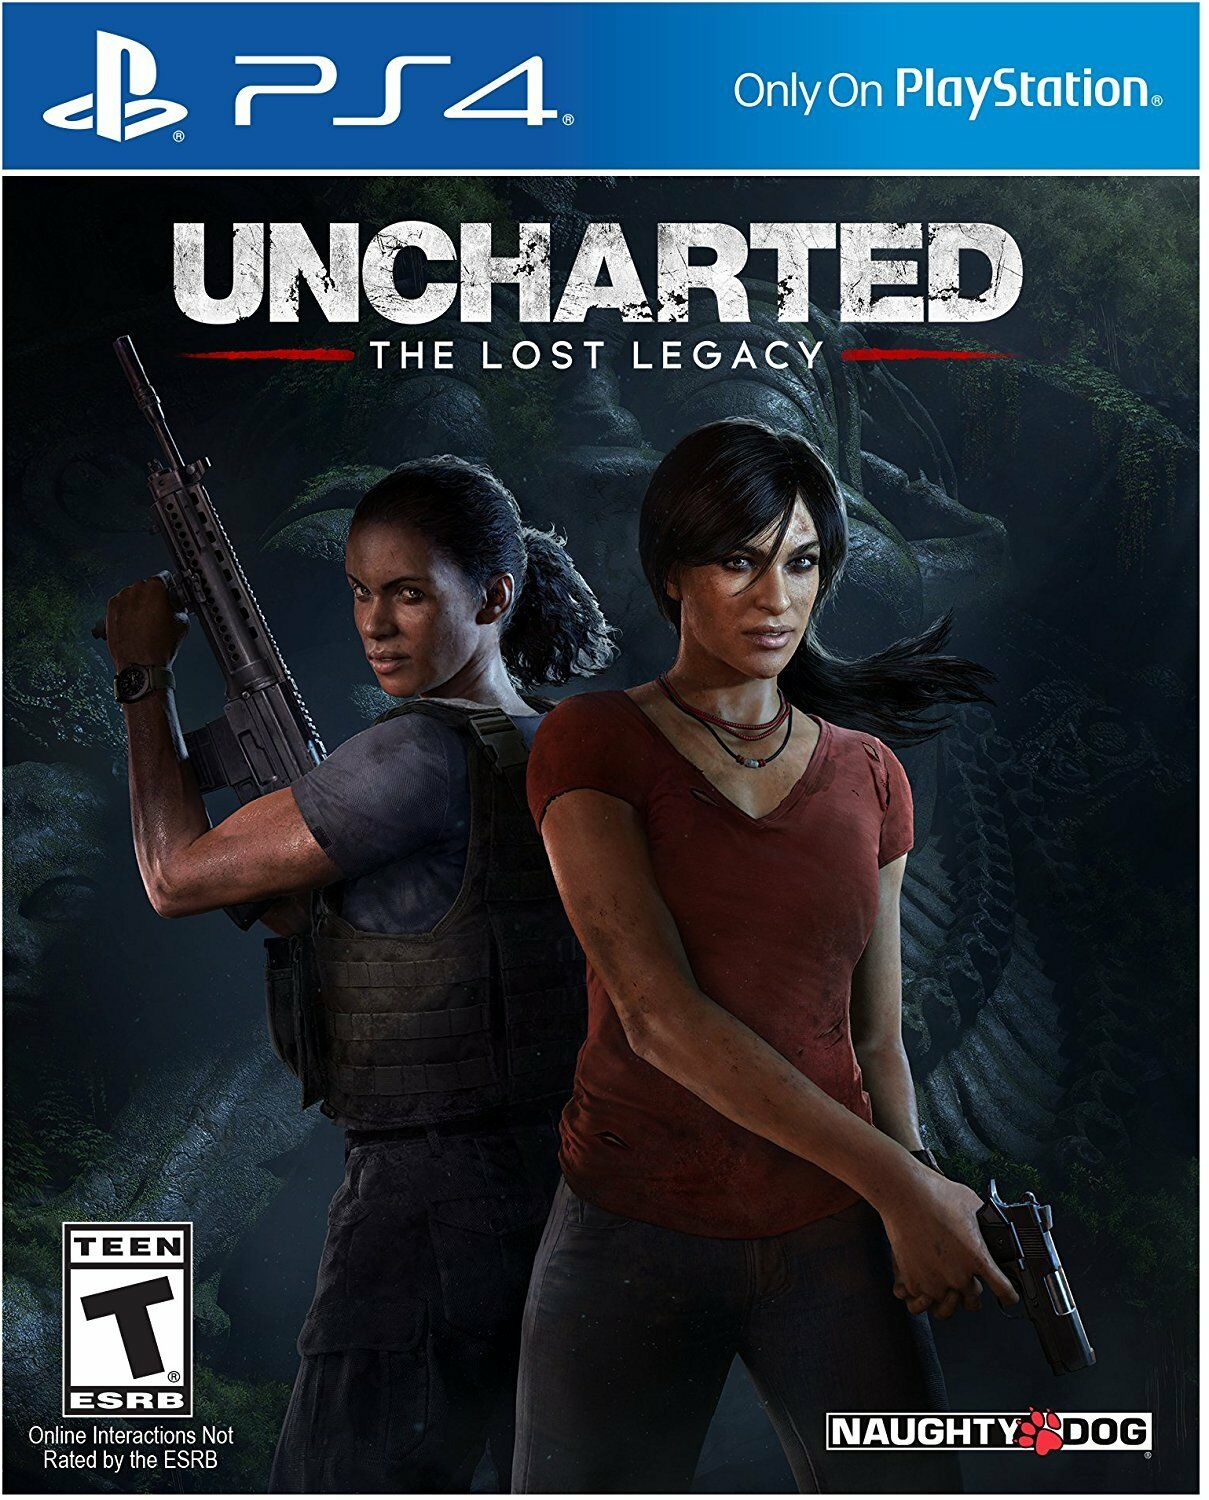 Uncharted The Lost Legacy Playstation 4 Exclusive PS4 Pro Console New Ships Fast